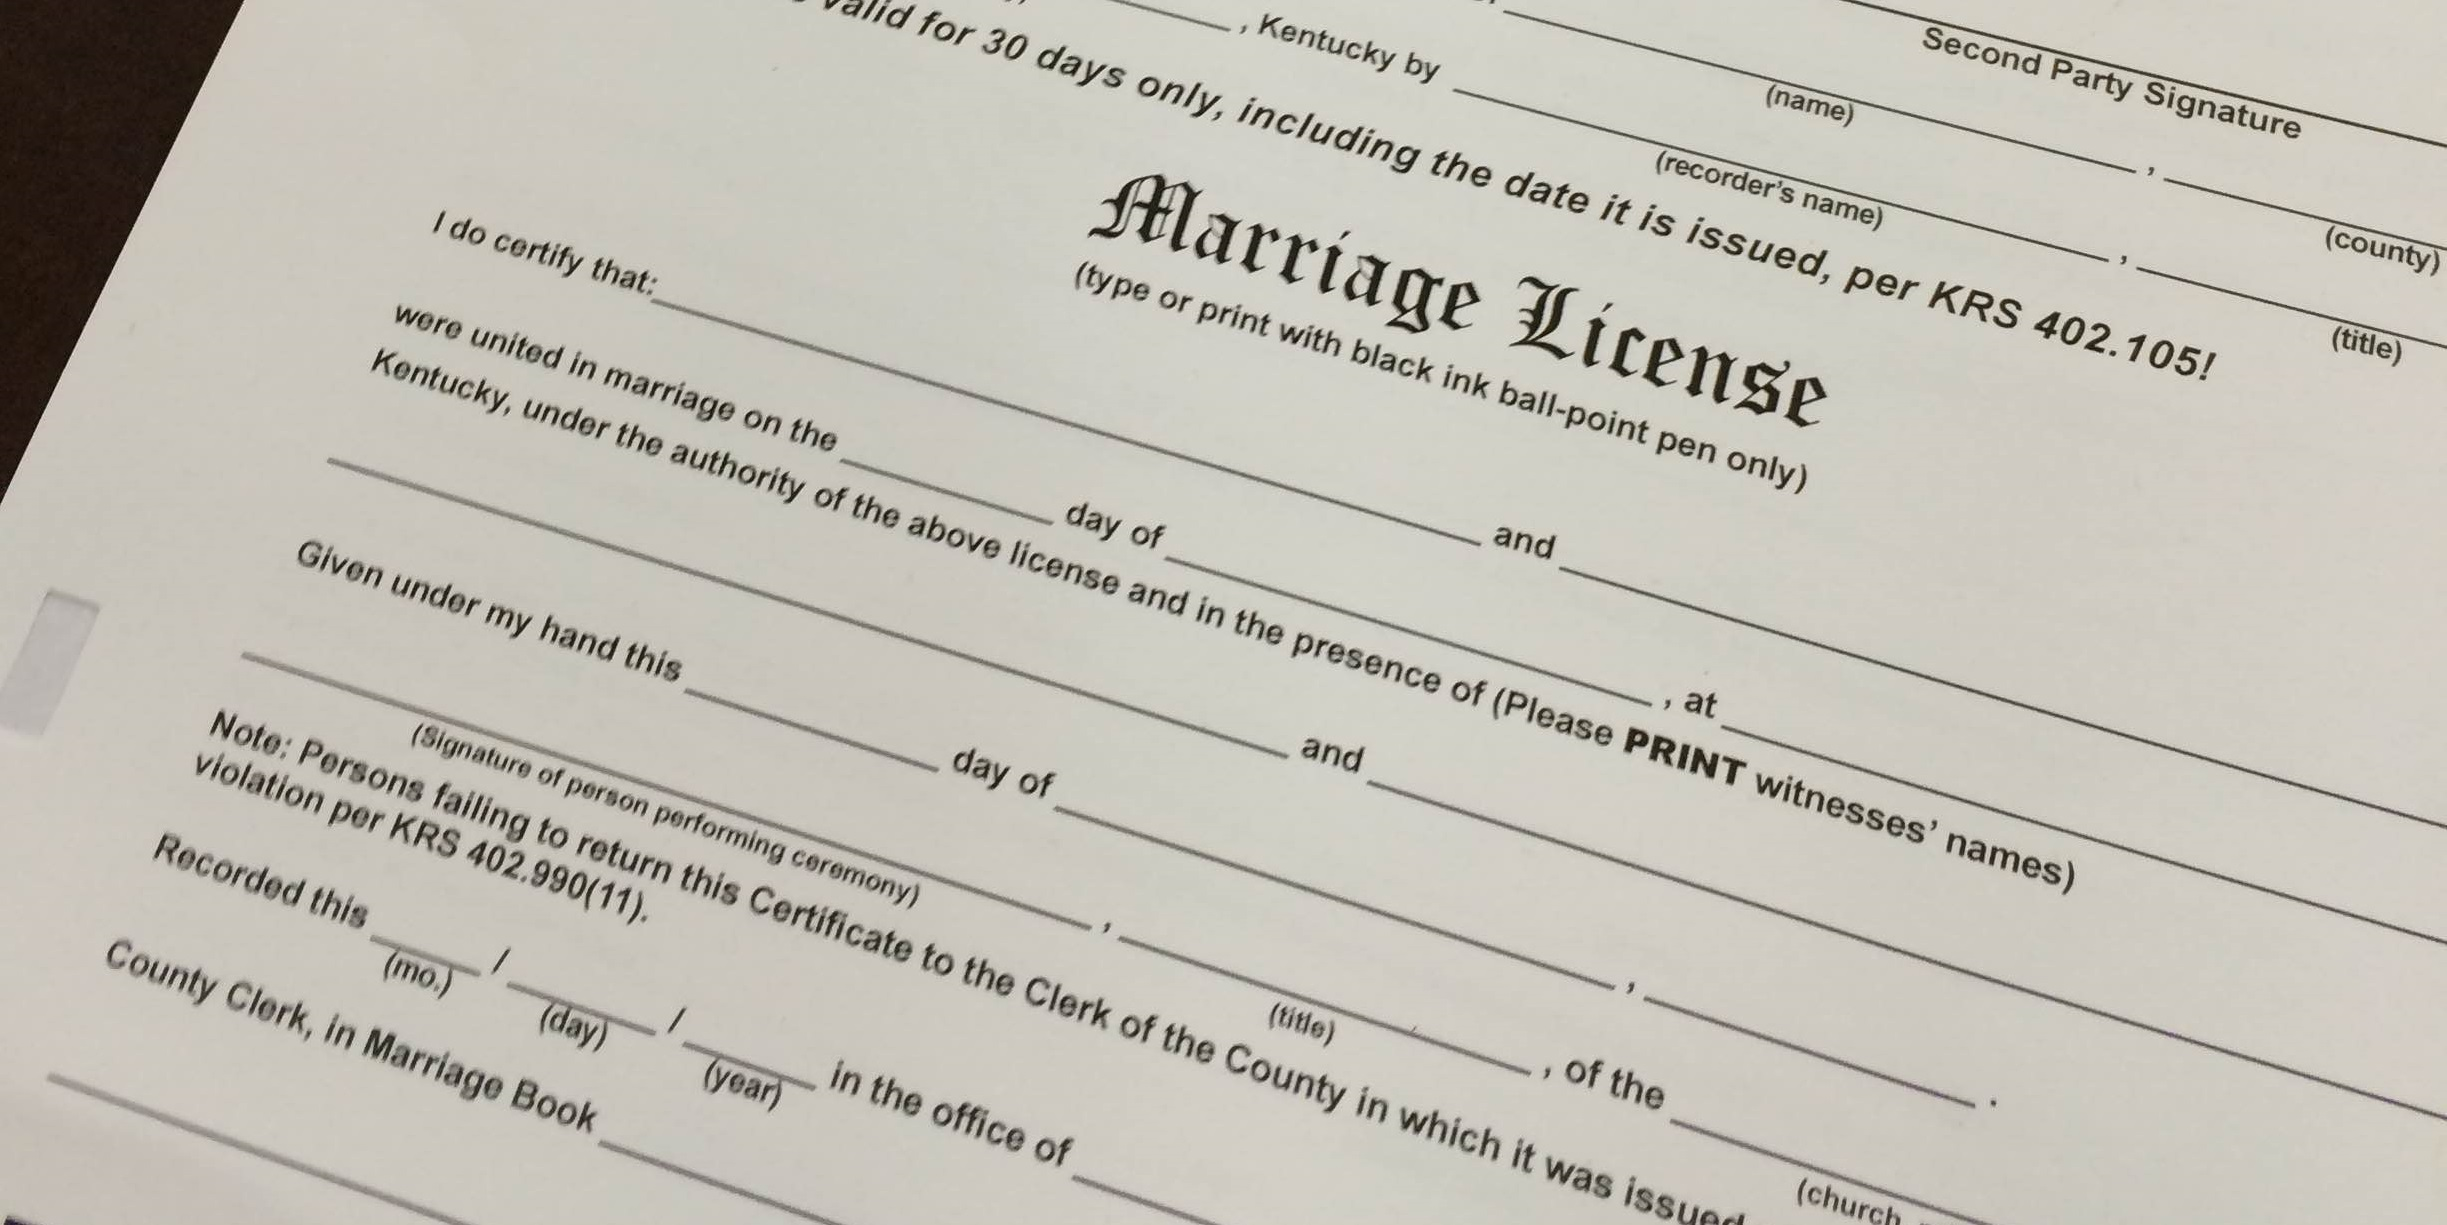 Couples seek legal costs in kentucky marriage license case wkms xflitez Images